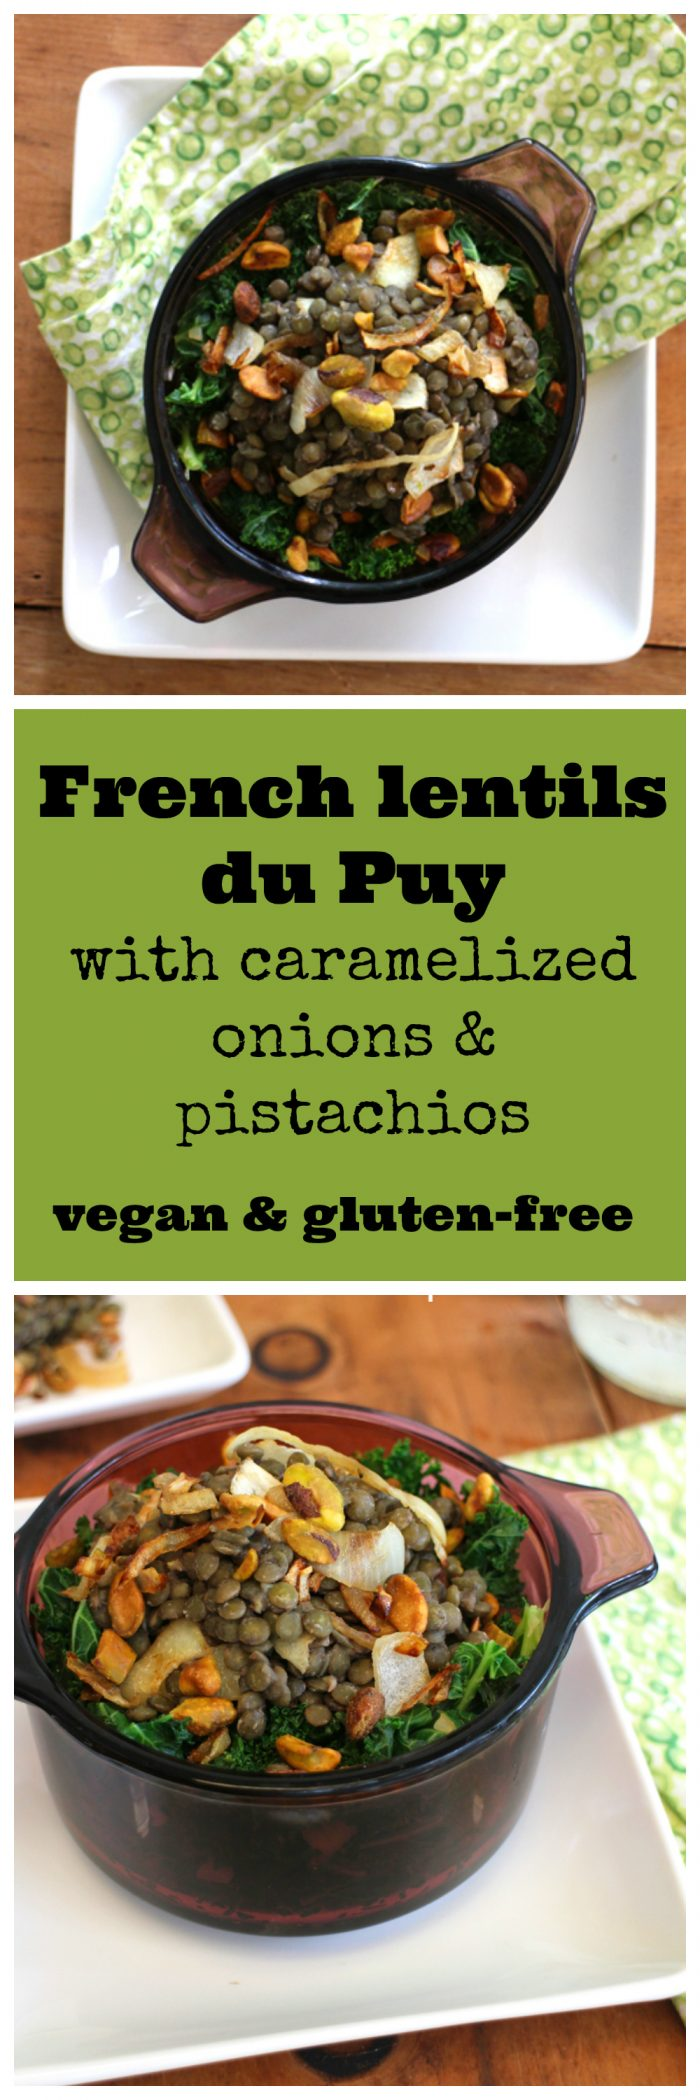 French lentils du Puy with caramelized onions & pistachios - vegan & gluten-free | cadryskitchen.com